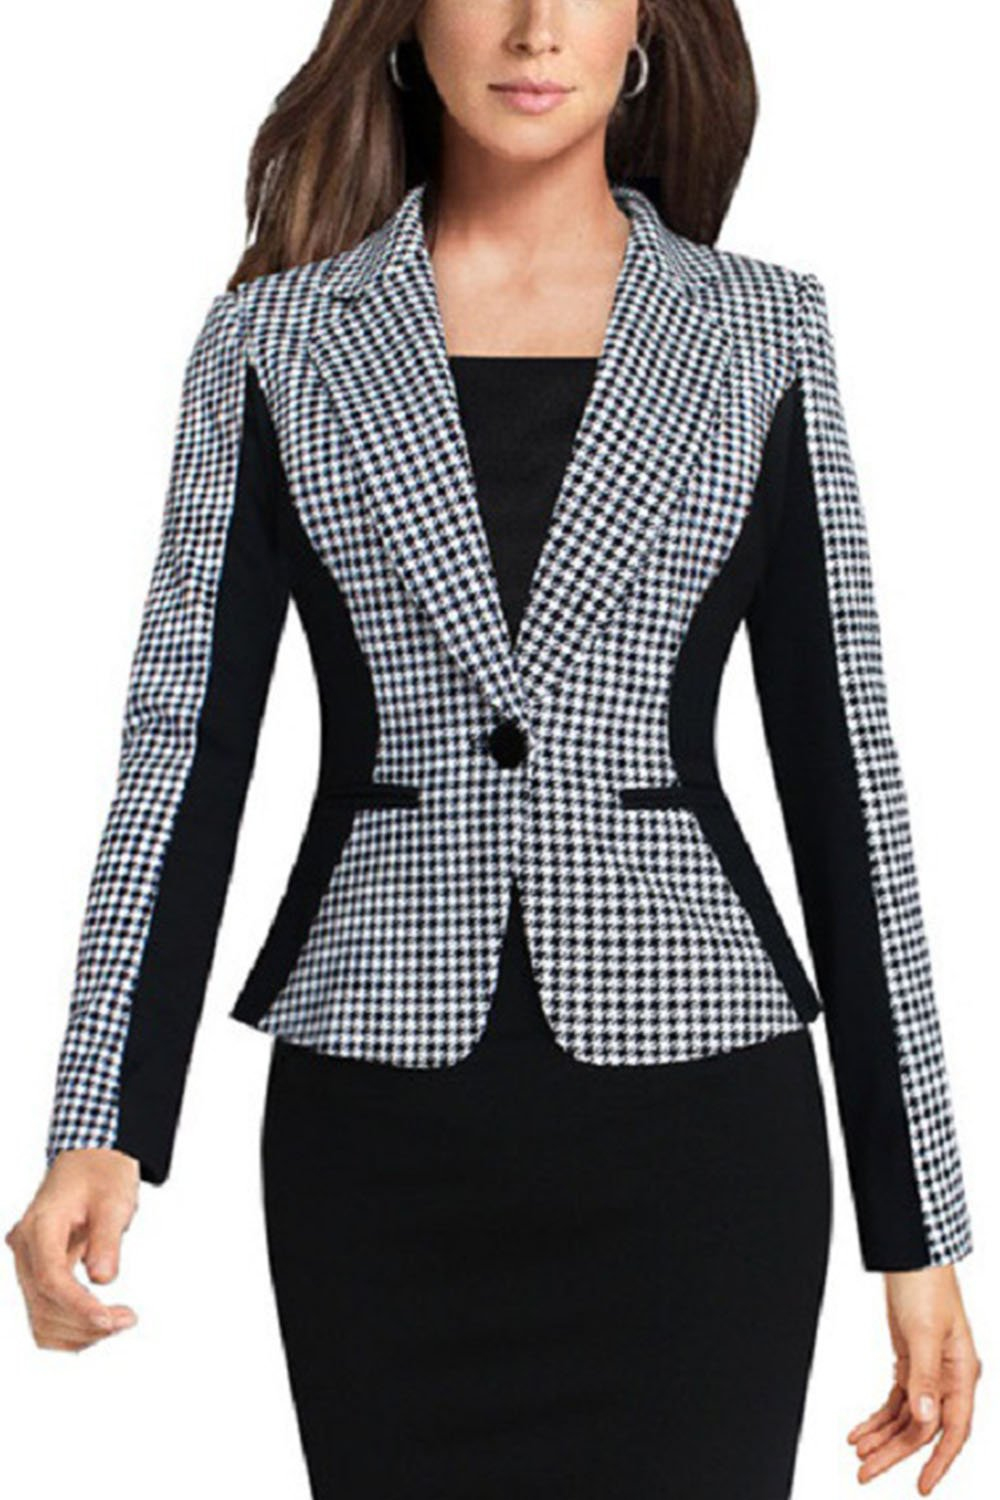 Women Formal Long Sleeve Houndstooth Suit Retro Plus Size OL Jacket White Button CAKDE82